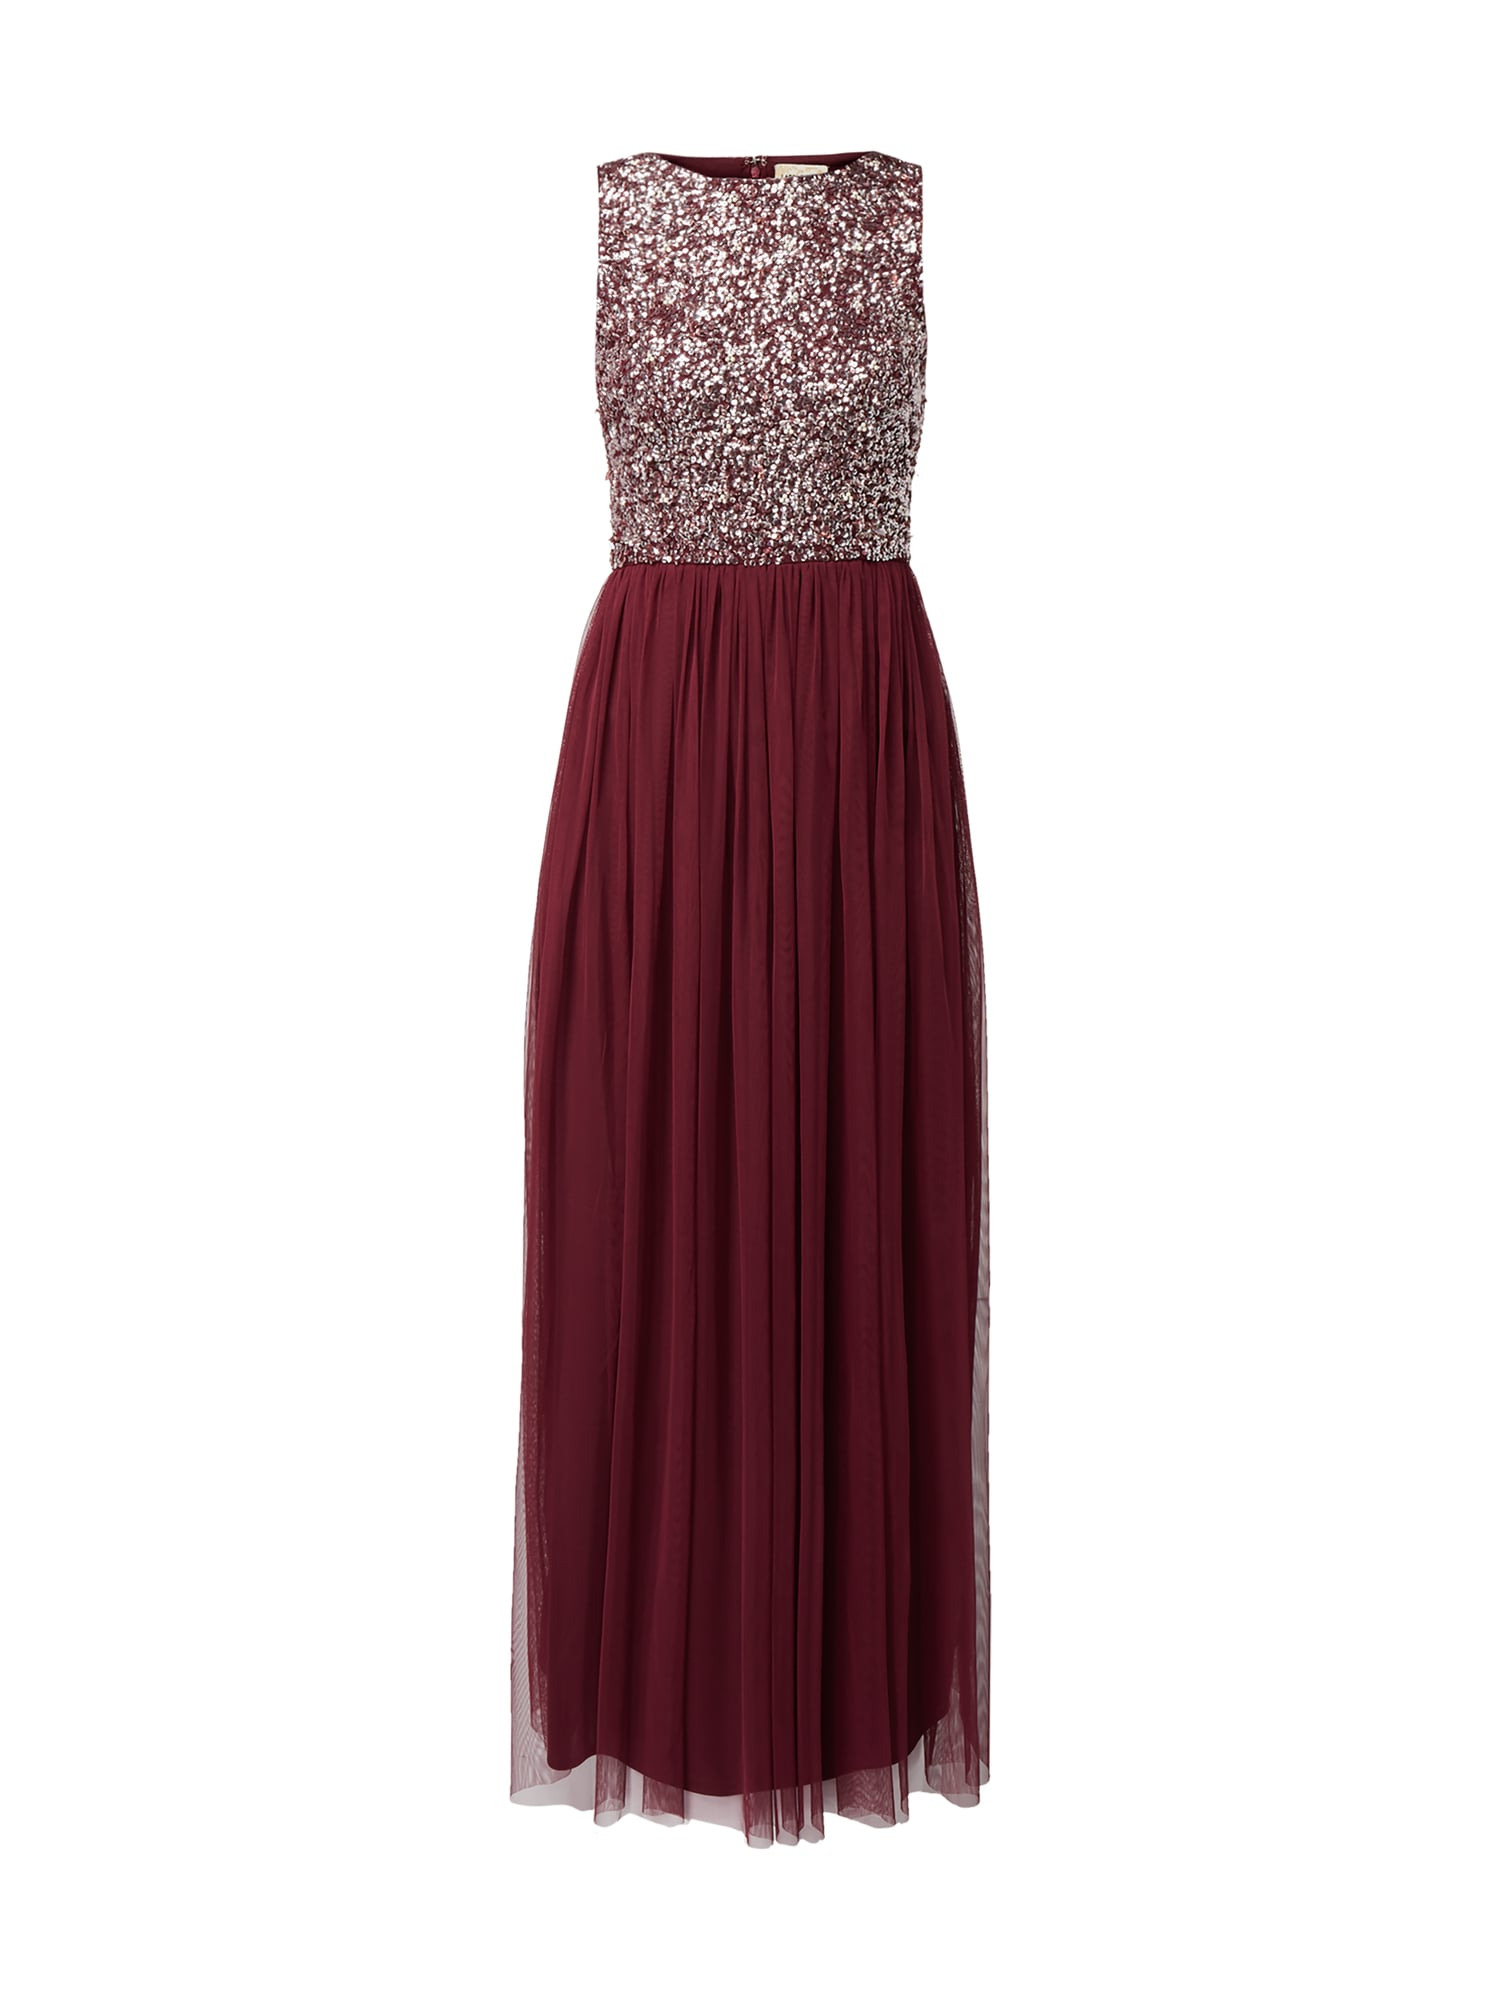 15 Leicht Abendkleid Bordeaux Rot Boutique10 Kreativ Abendkleid Bordeaux Rot Boutique